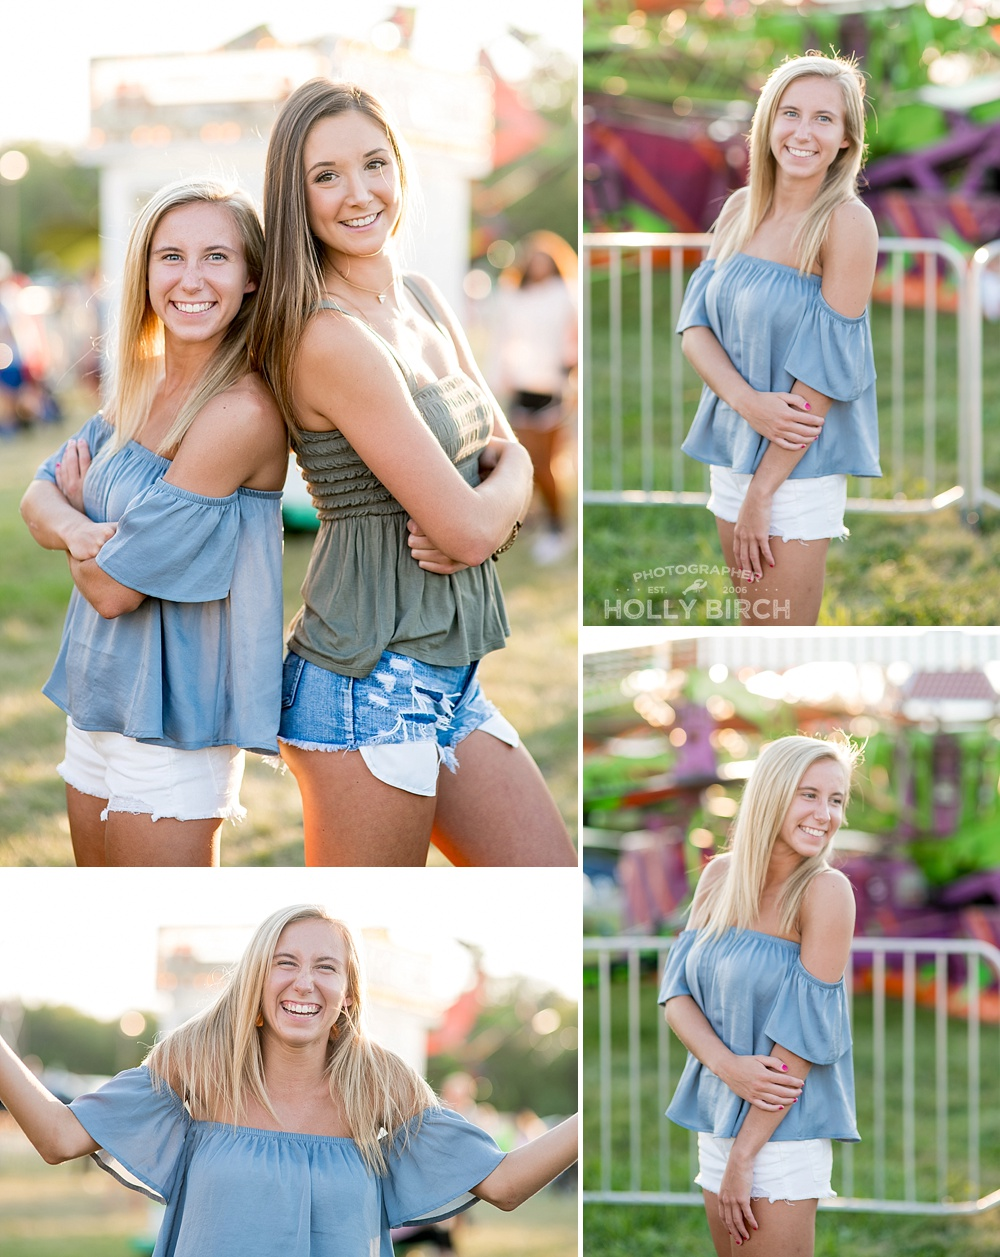 Central-IL-senior-model-photographer-carnival-fair-themed-shoot_3735.jpg